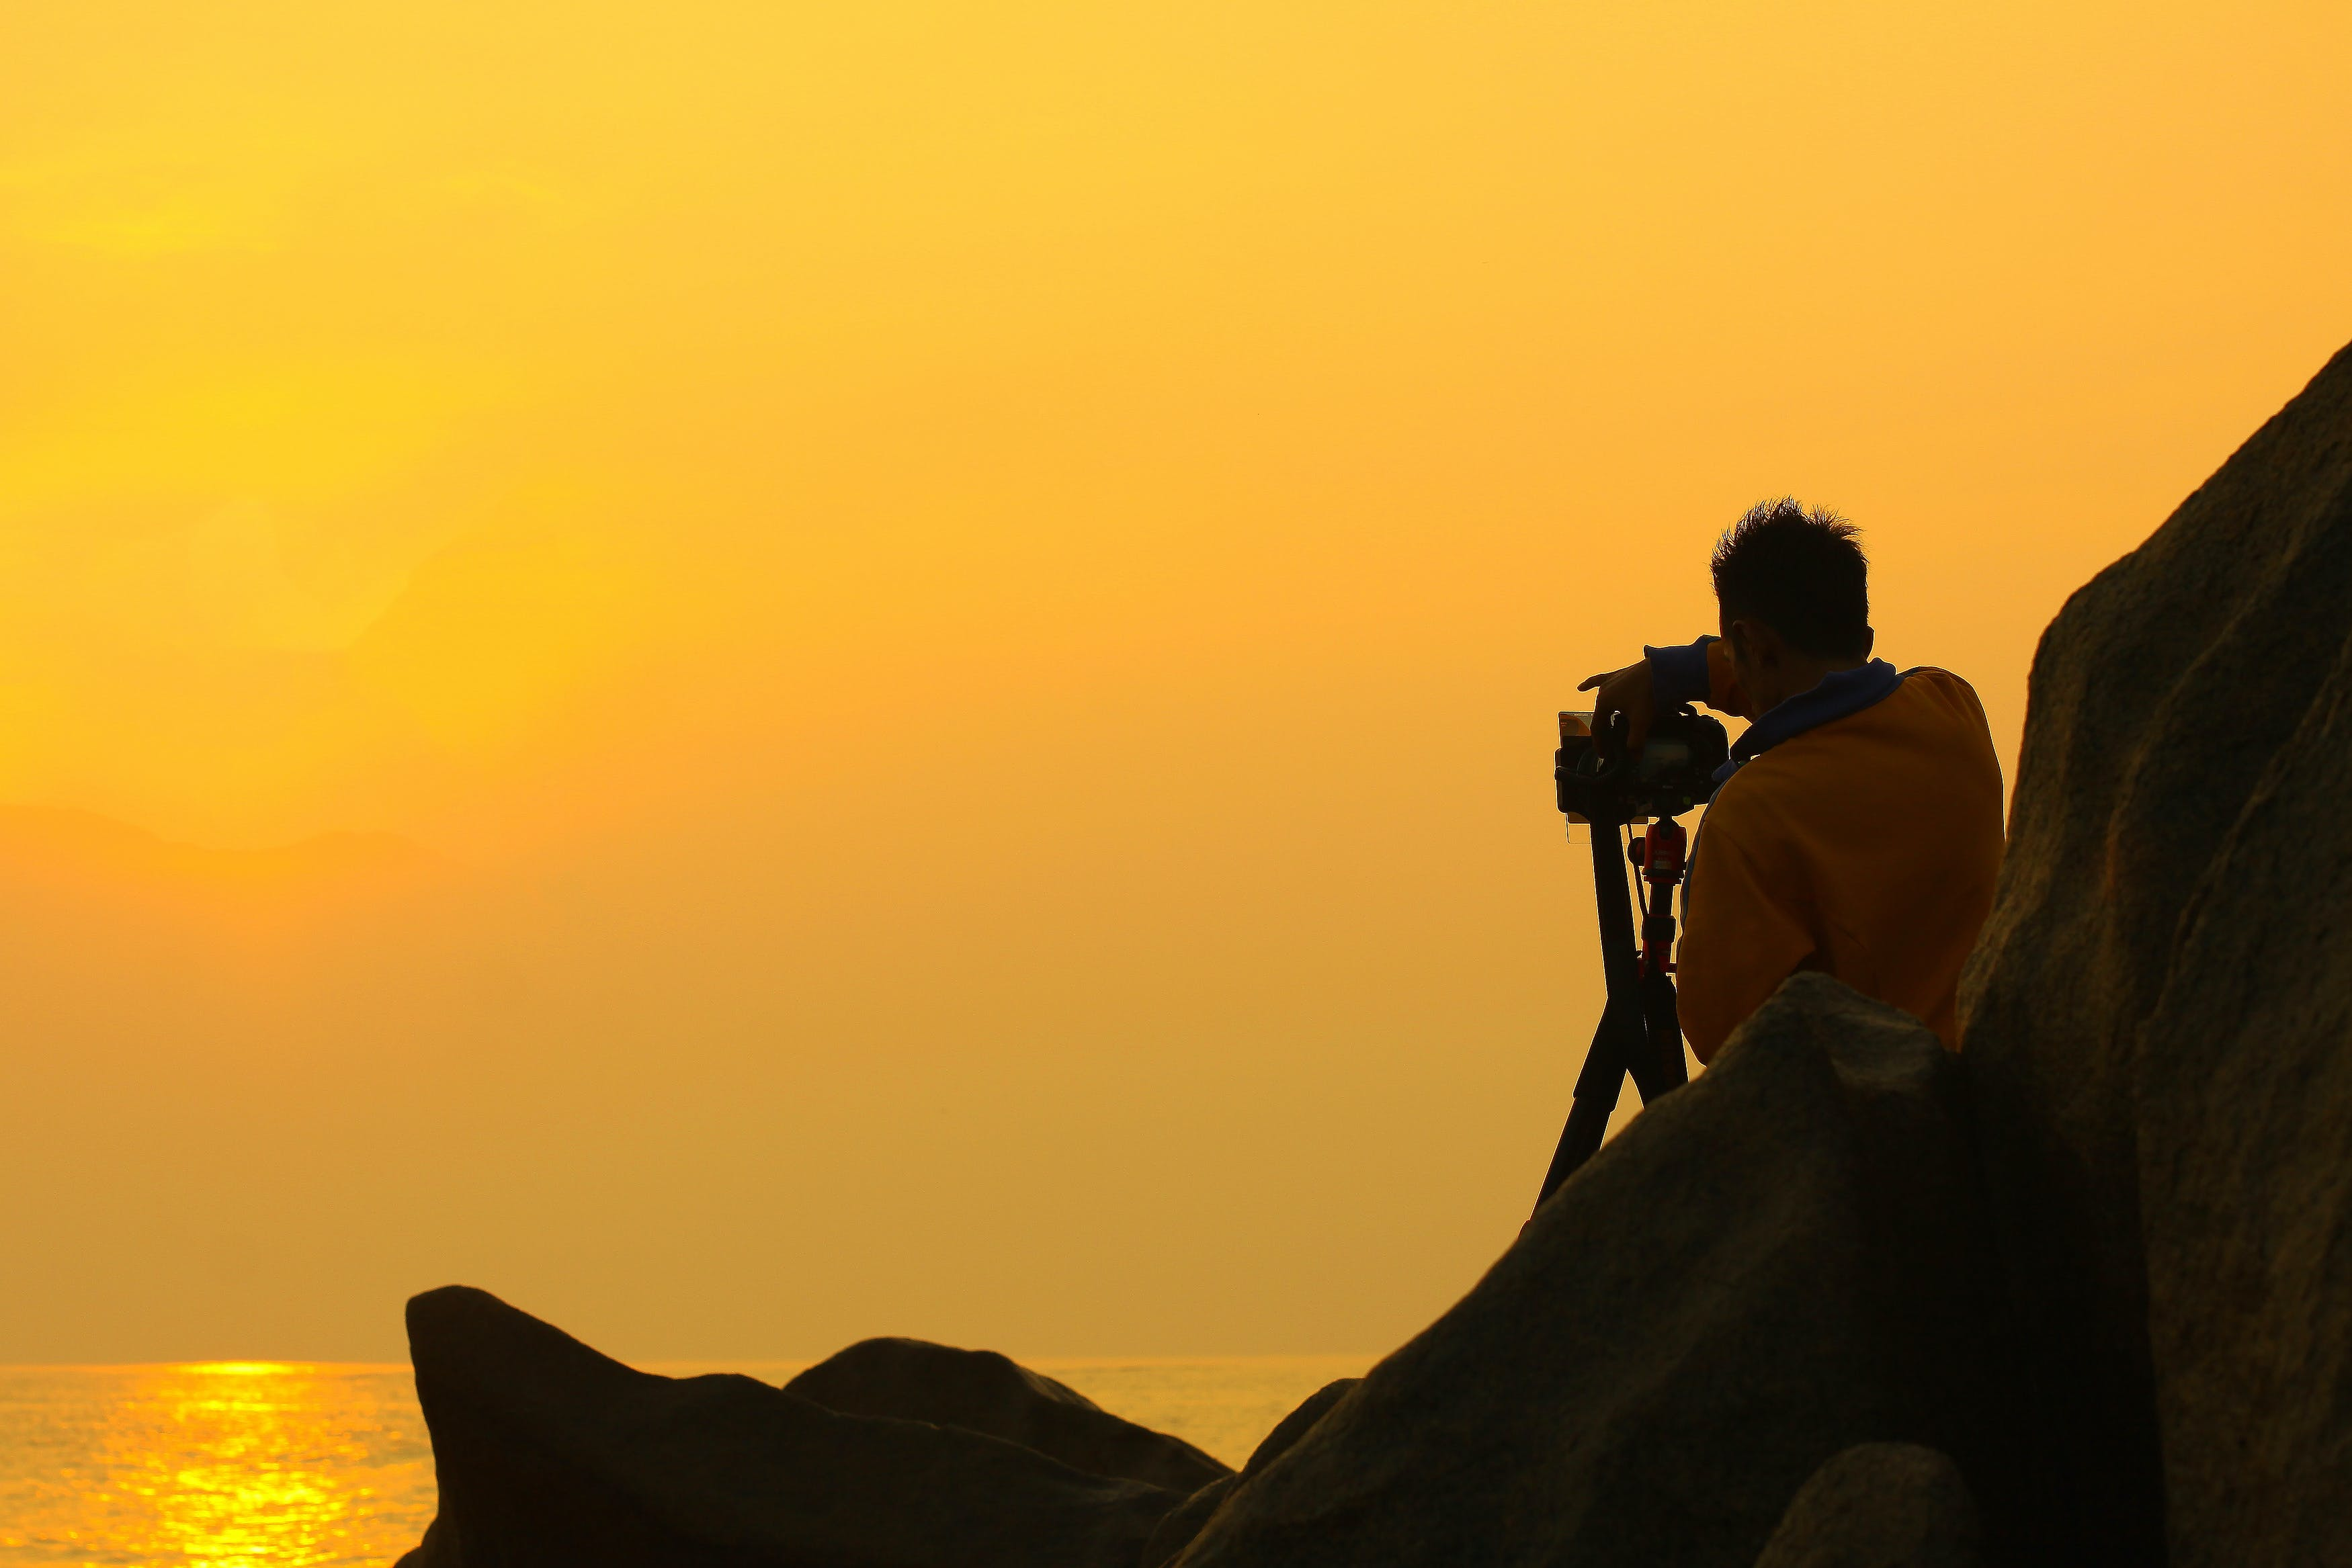 Man Holding Dslr Camera during Golden Hour